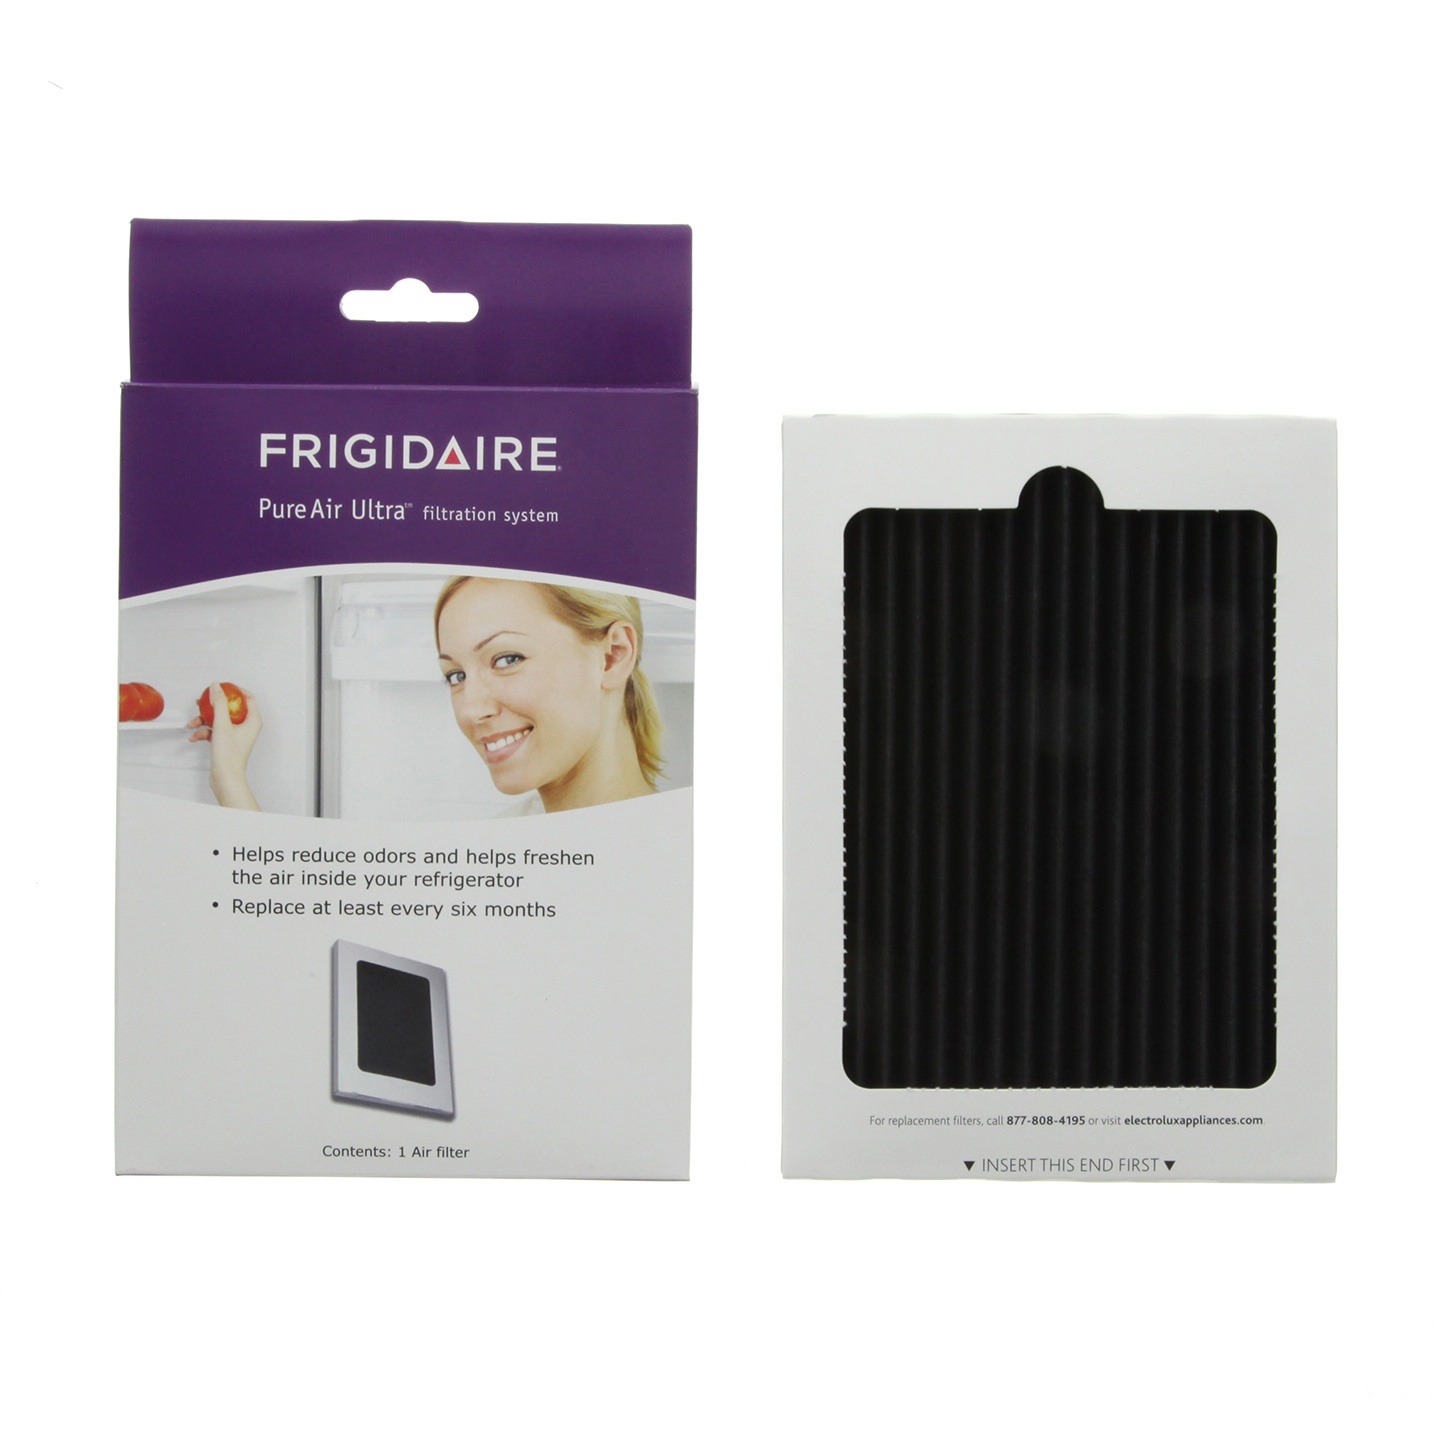 about Frigidaire PAULTRA Pure Air Ultra Refrigerator Air Filter